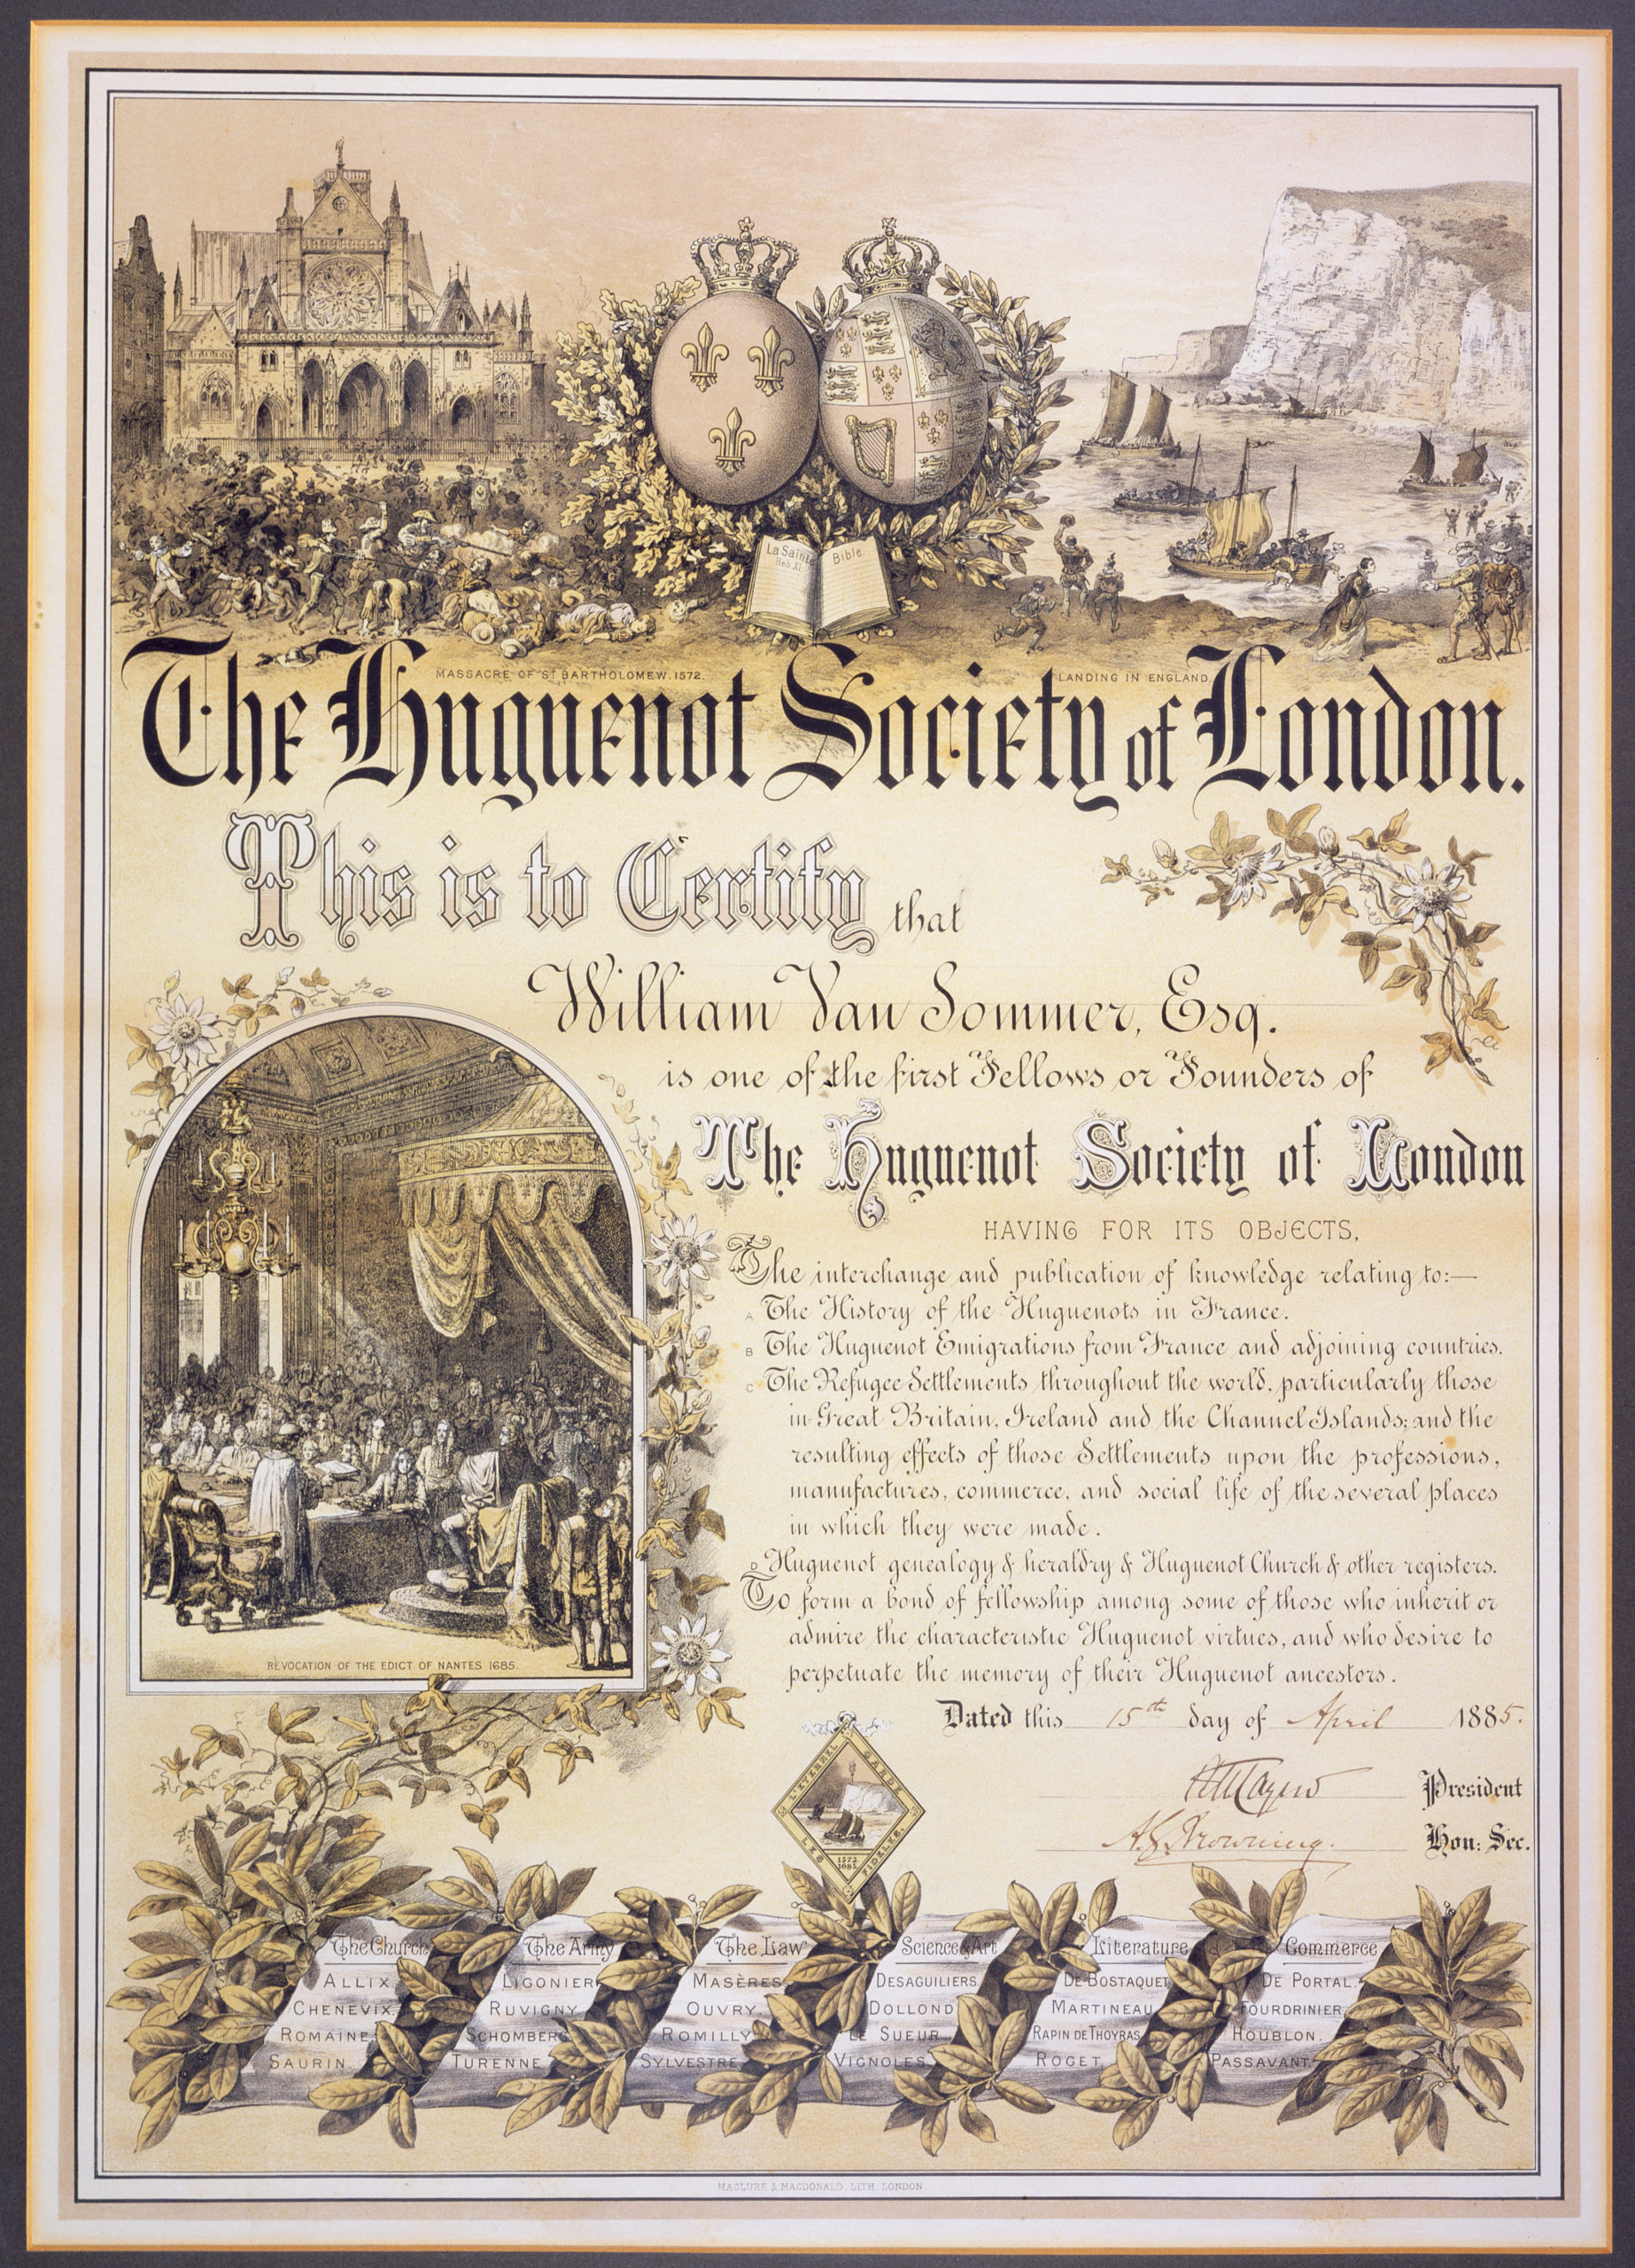 Certificate of the Huguenot Society